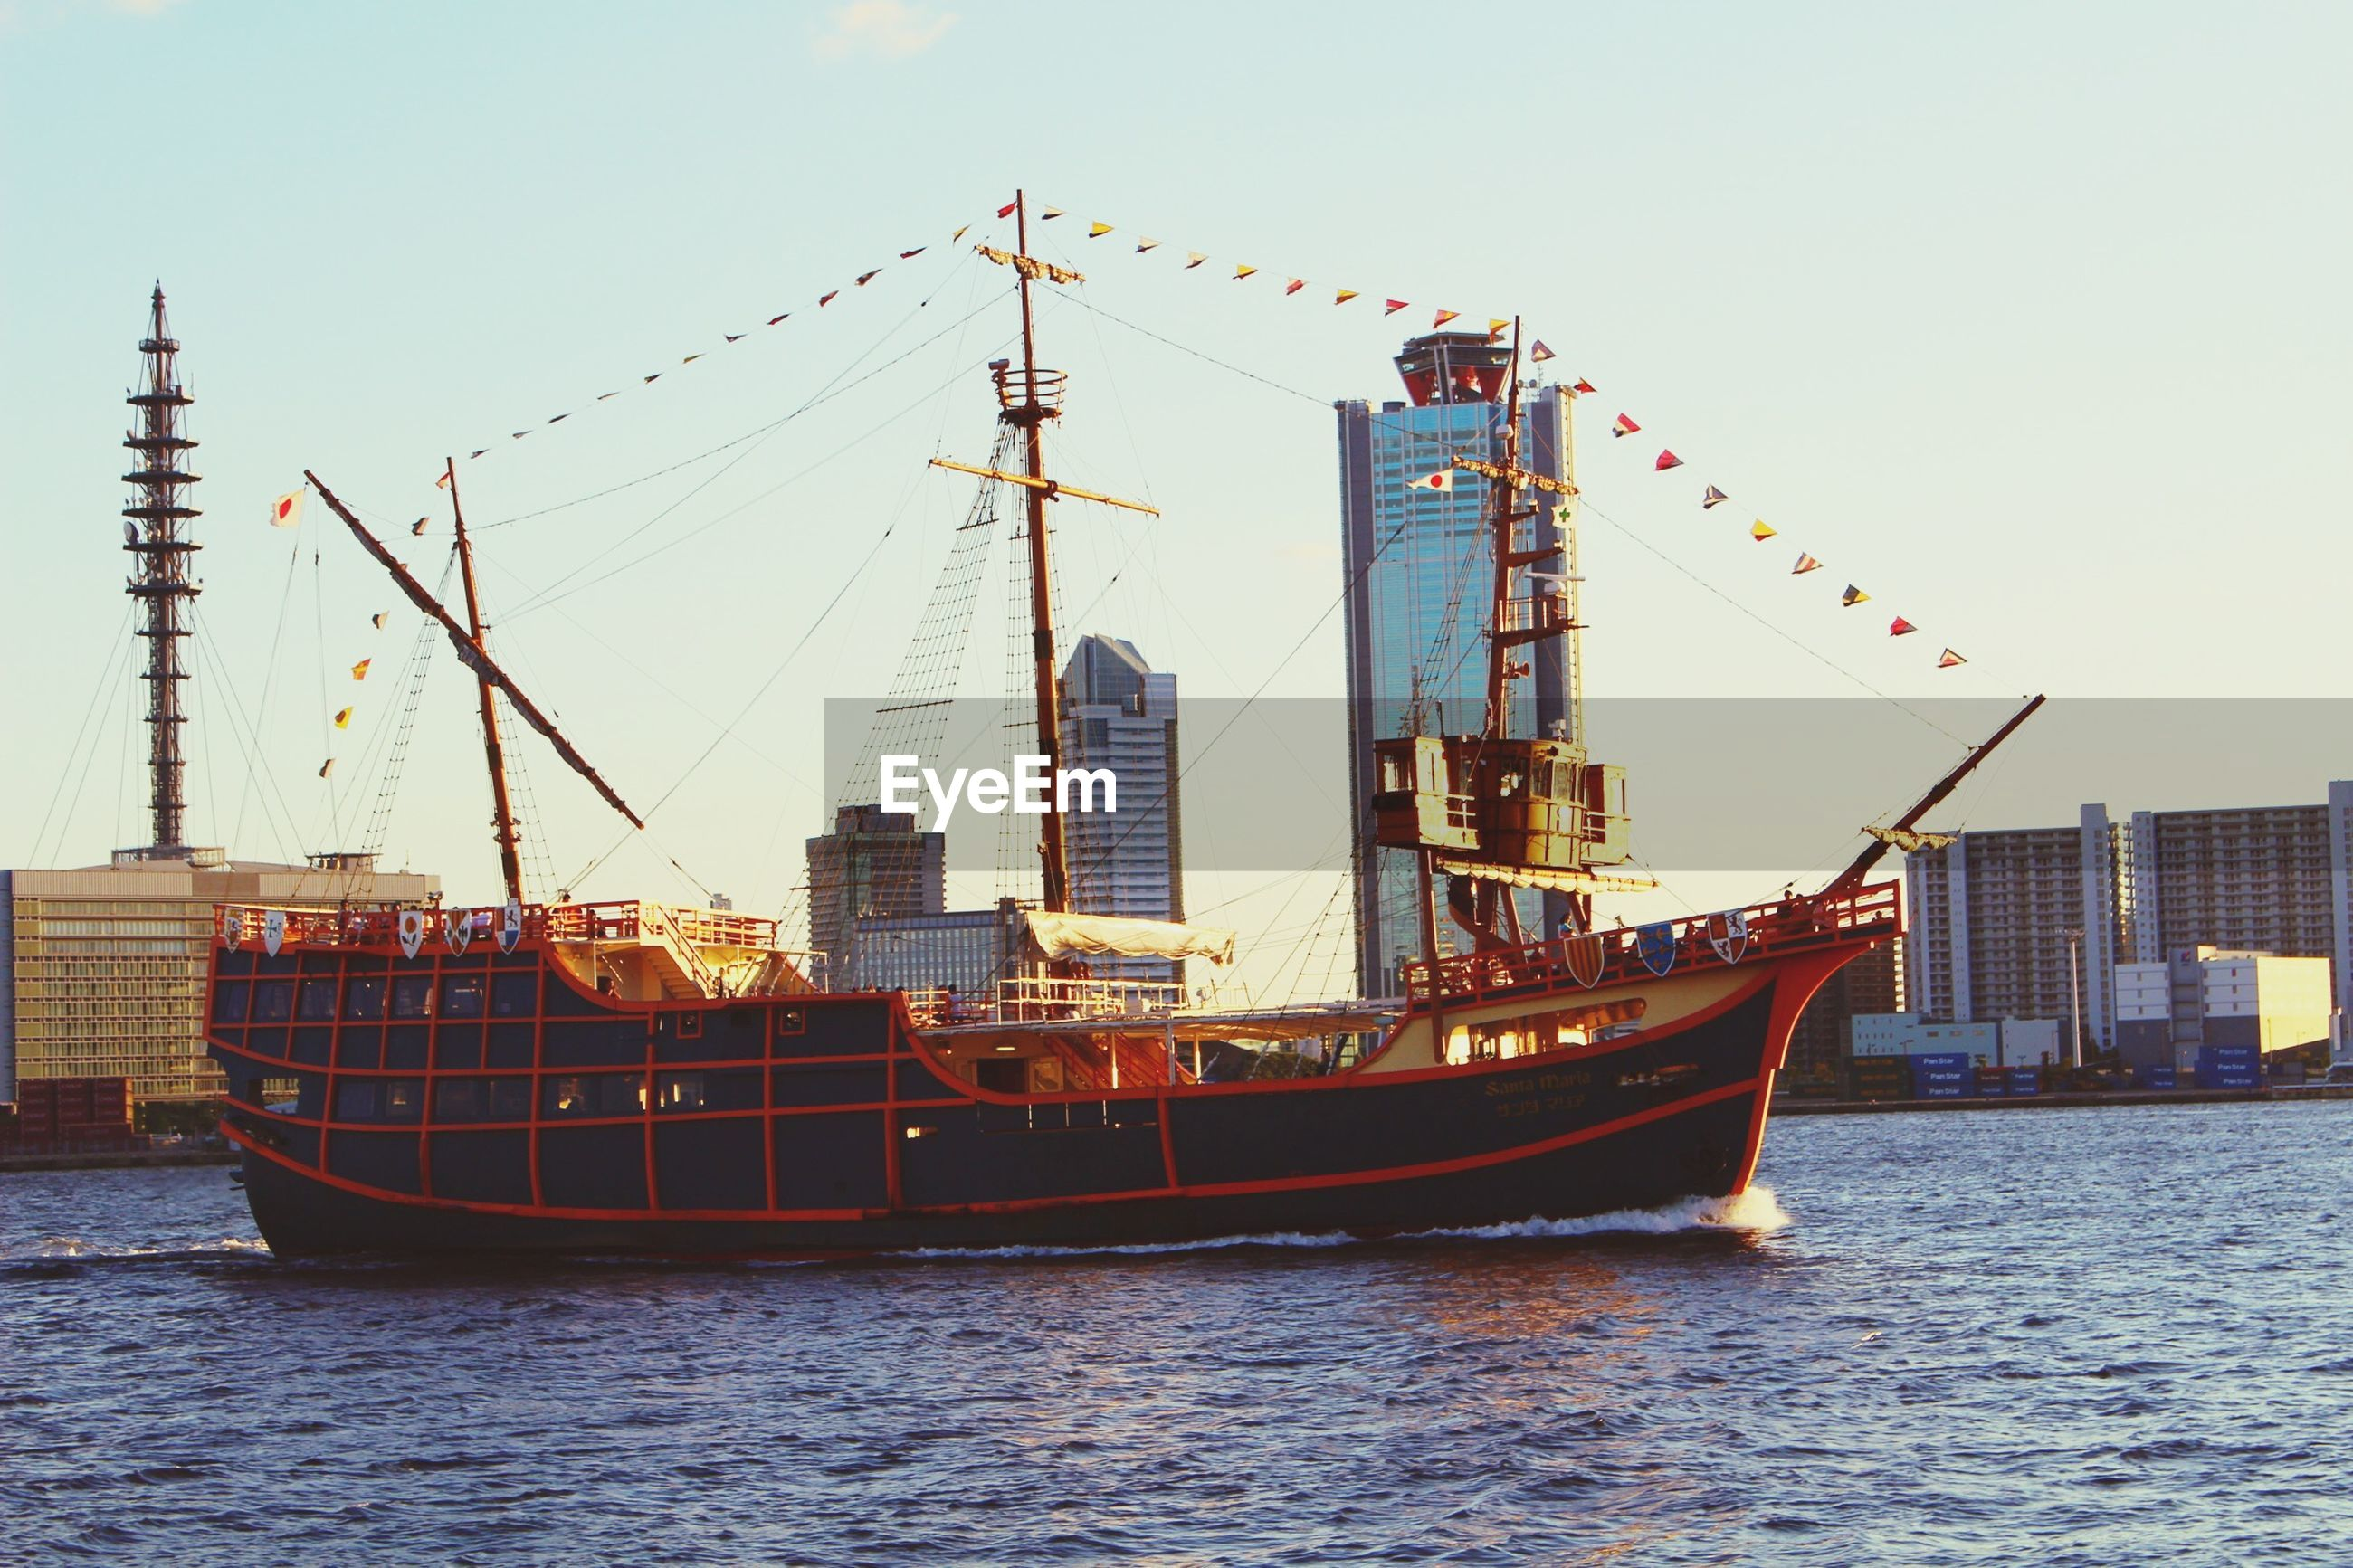 nautical vessel, water, waterfront, building exterior, transportation, boat, architecture, built structure, mode of transport, crane - construction machinery, harbor, sea, city, clear sky, moored, mast, commercial dock, ship, sky, river